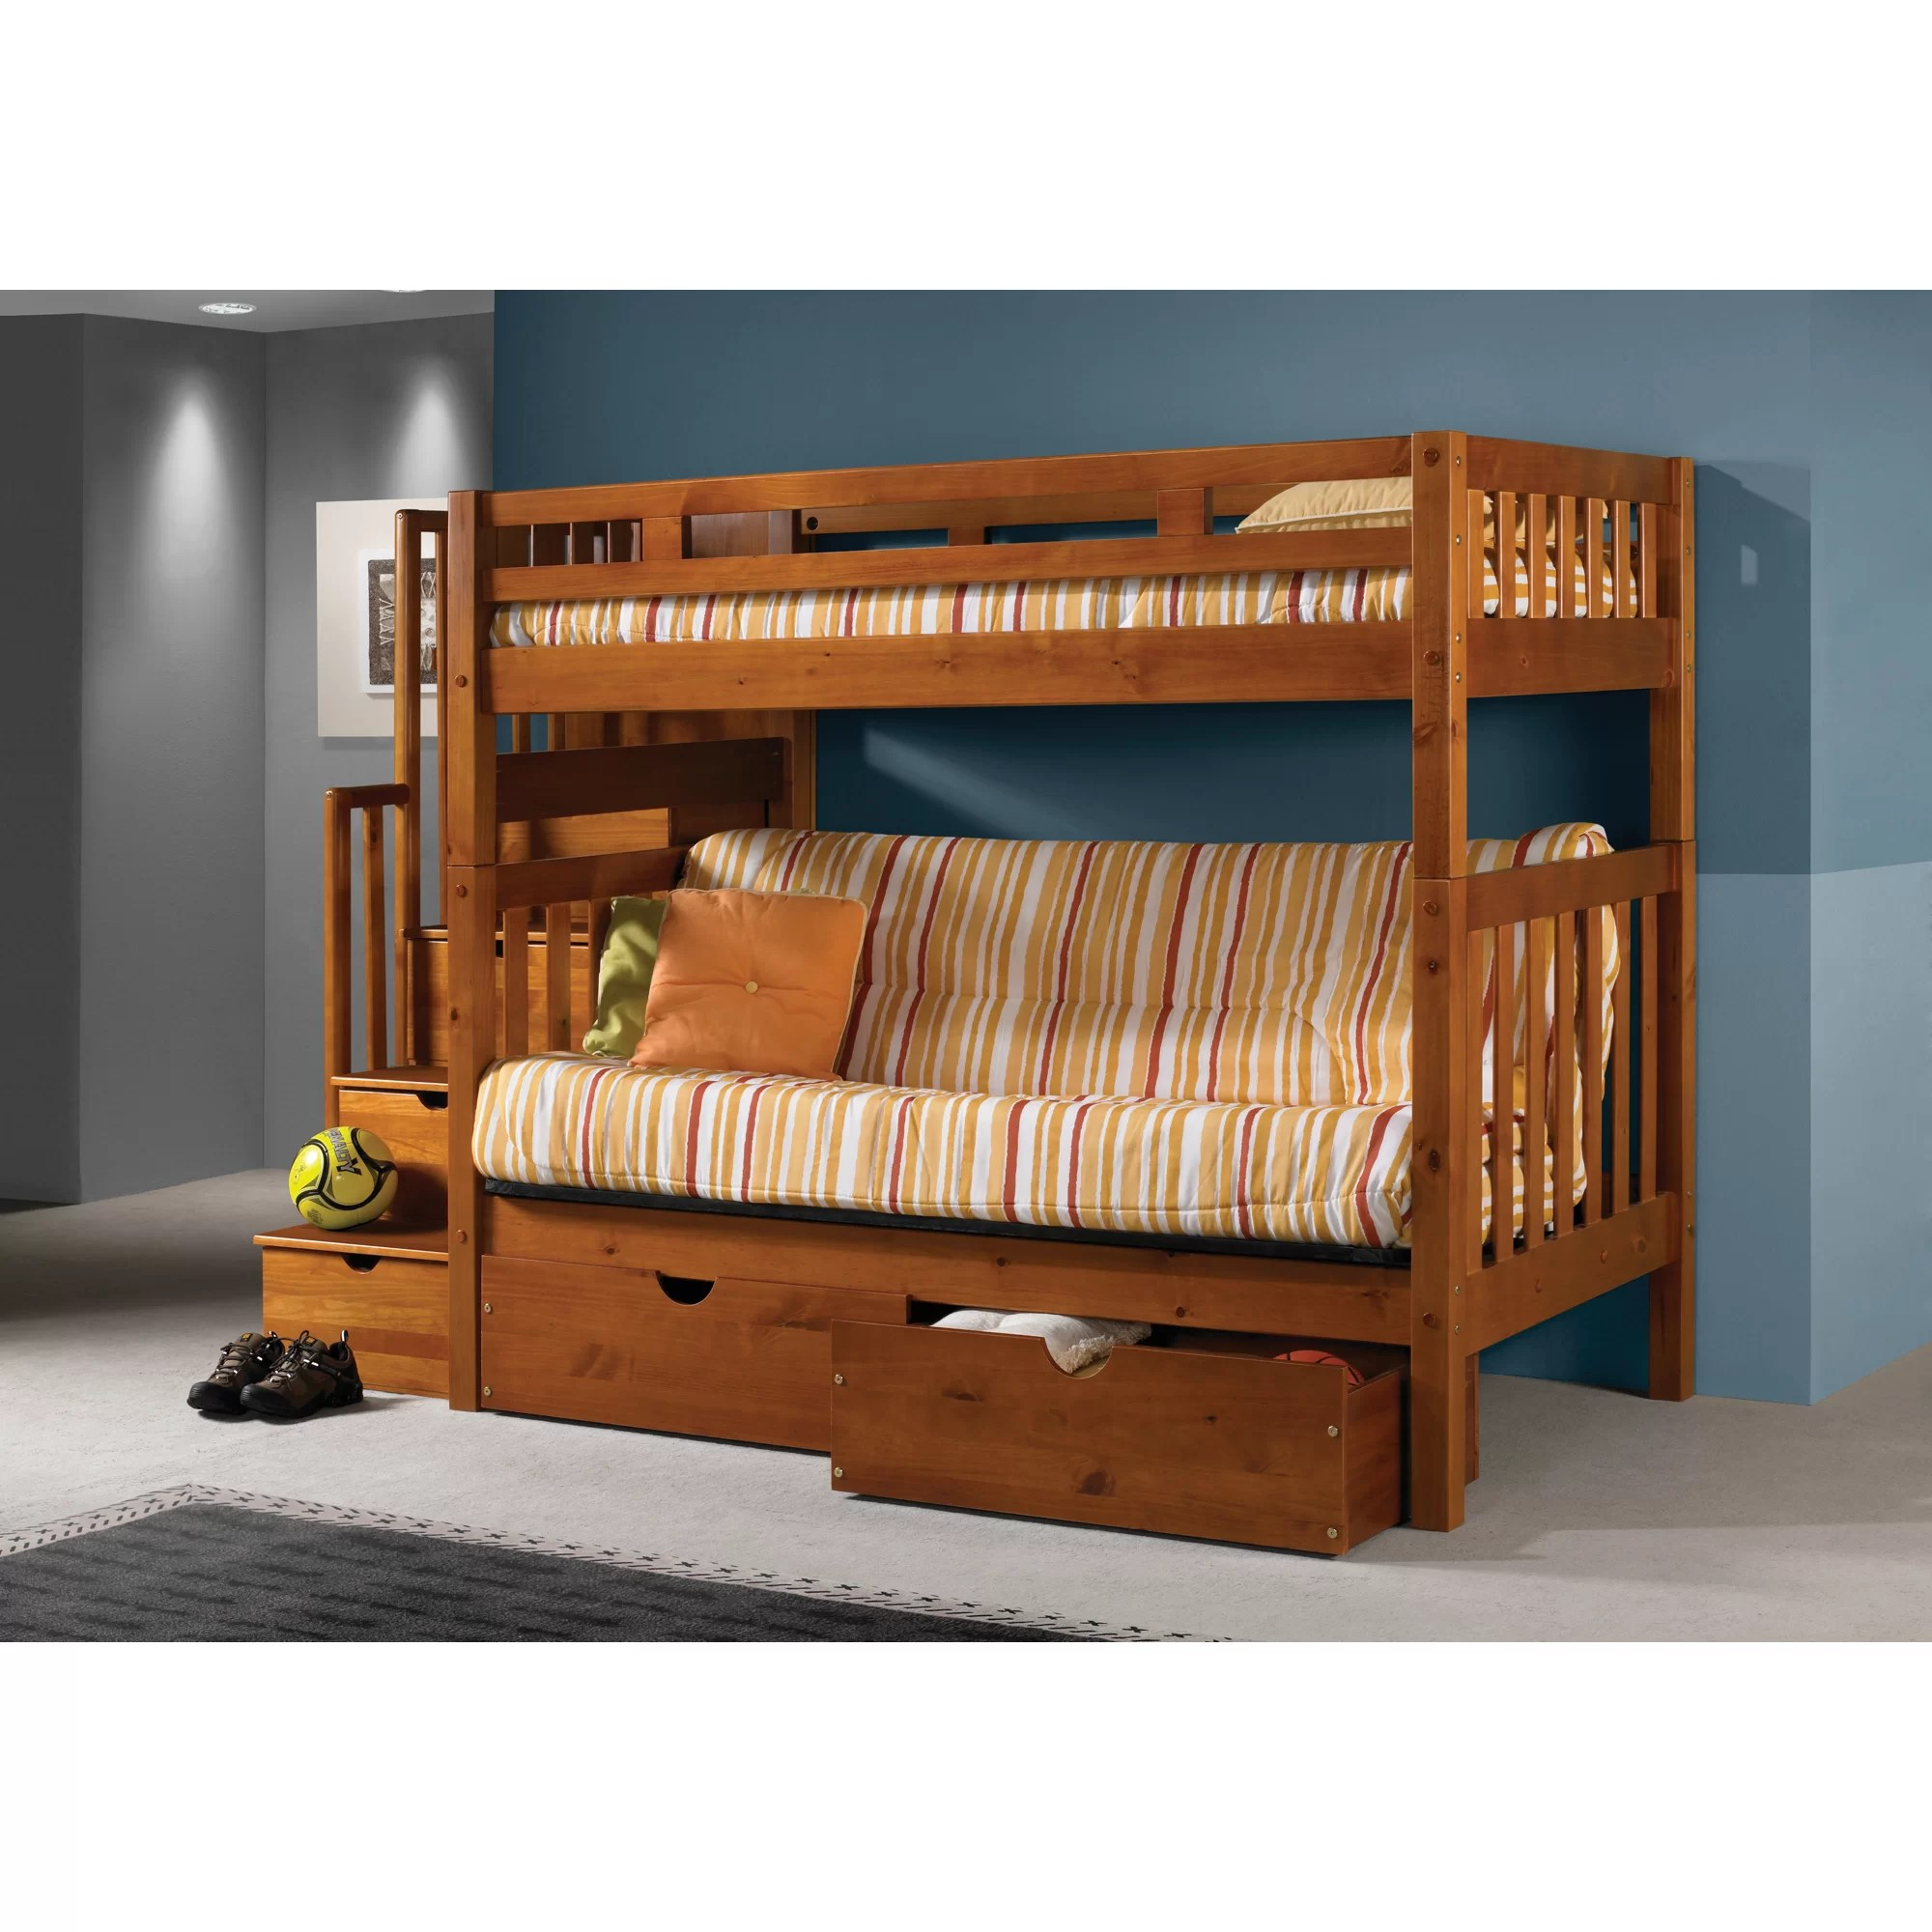 I Want Buy Furniture Online